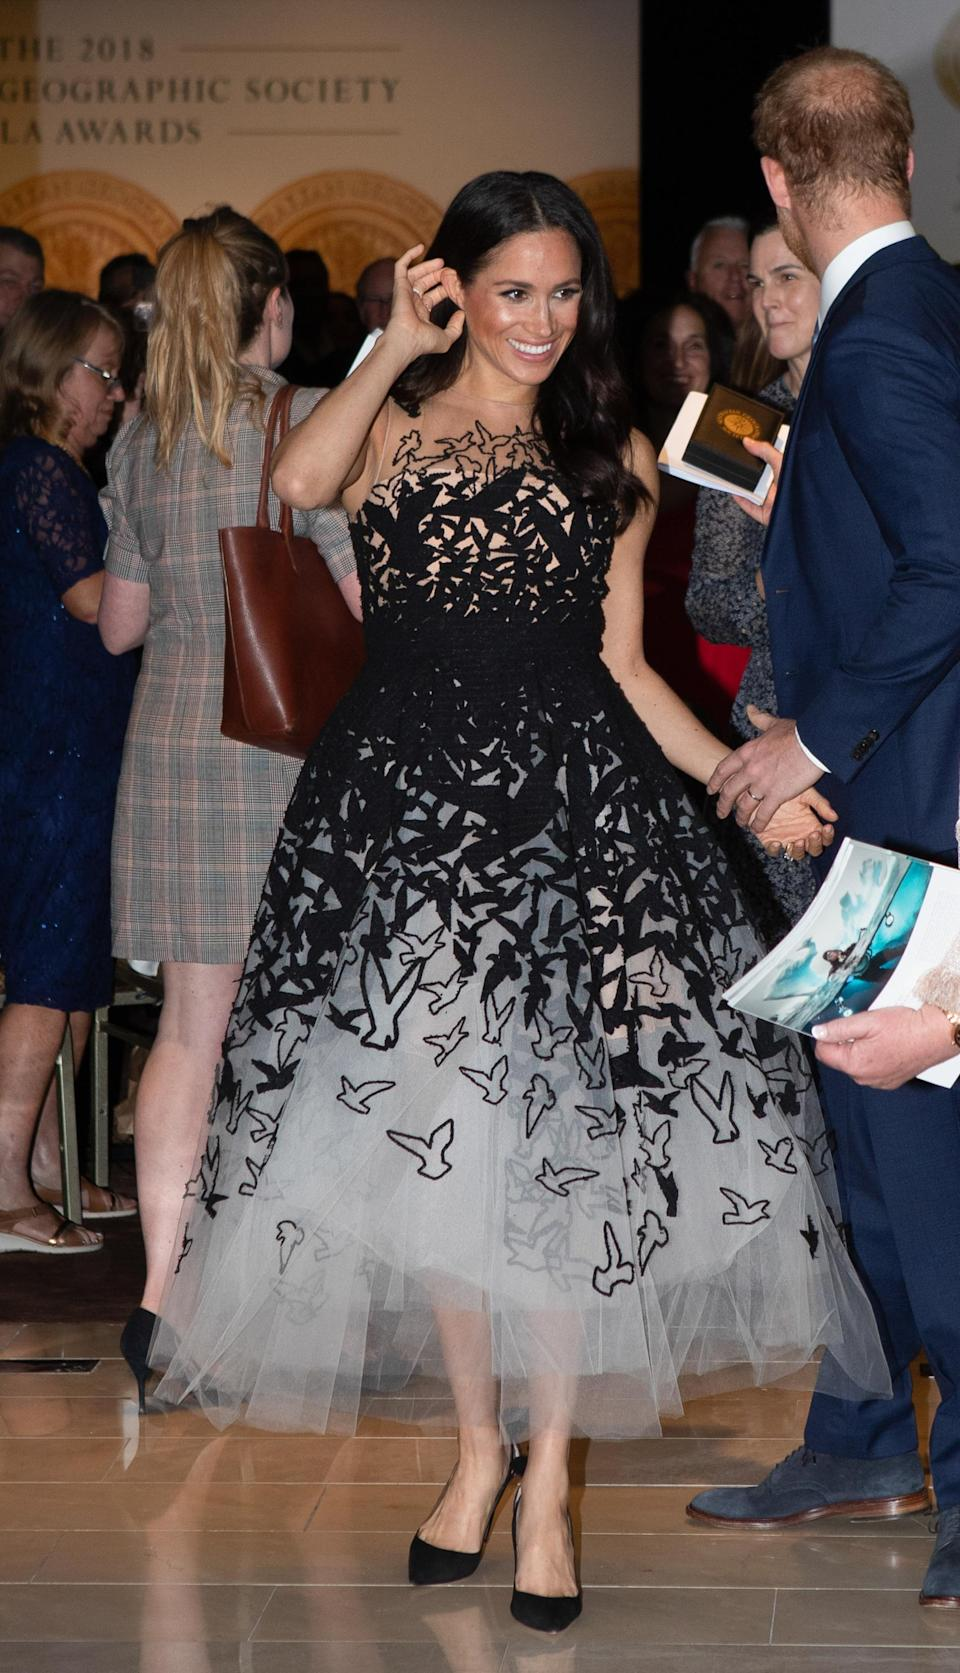 According to a source inside the palace, Meghan is being told 'she needs to start dressing less like a Hollywood star and more like a Royal'. Photo: Getty Images